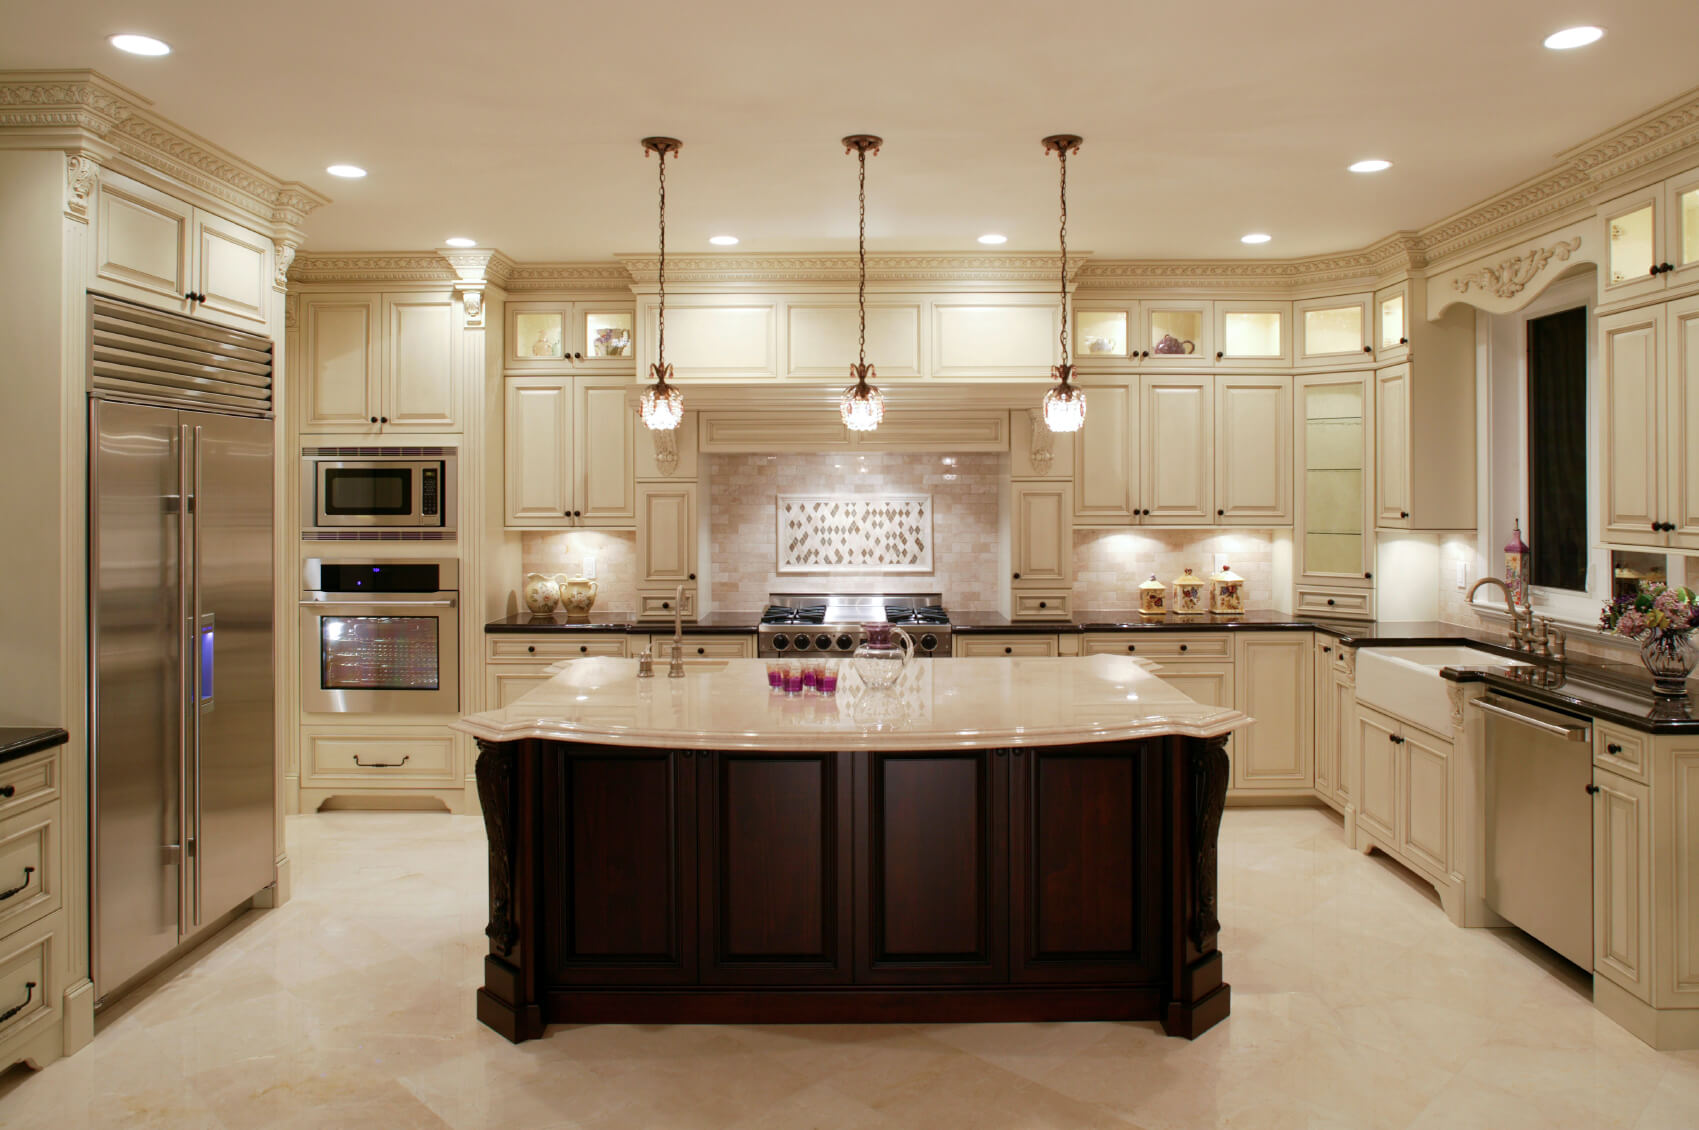 41 luxury u-shaped kitchen designs & layouts (photos)